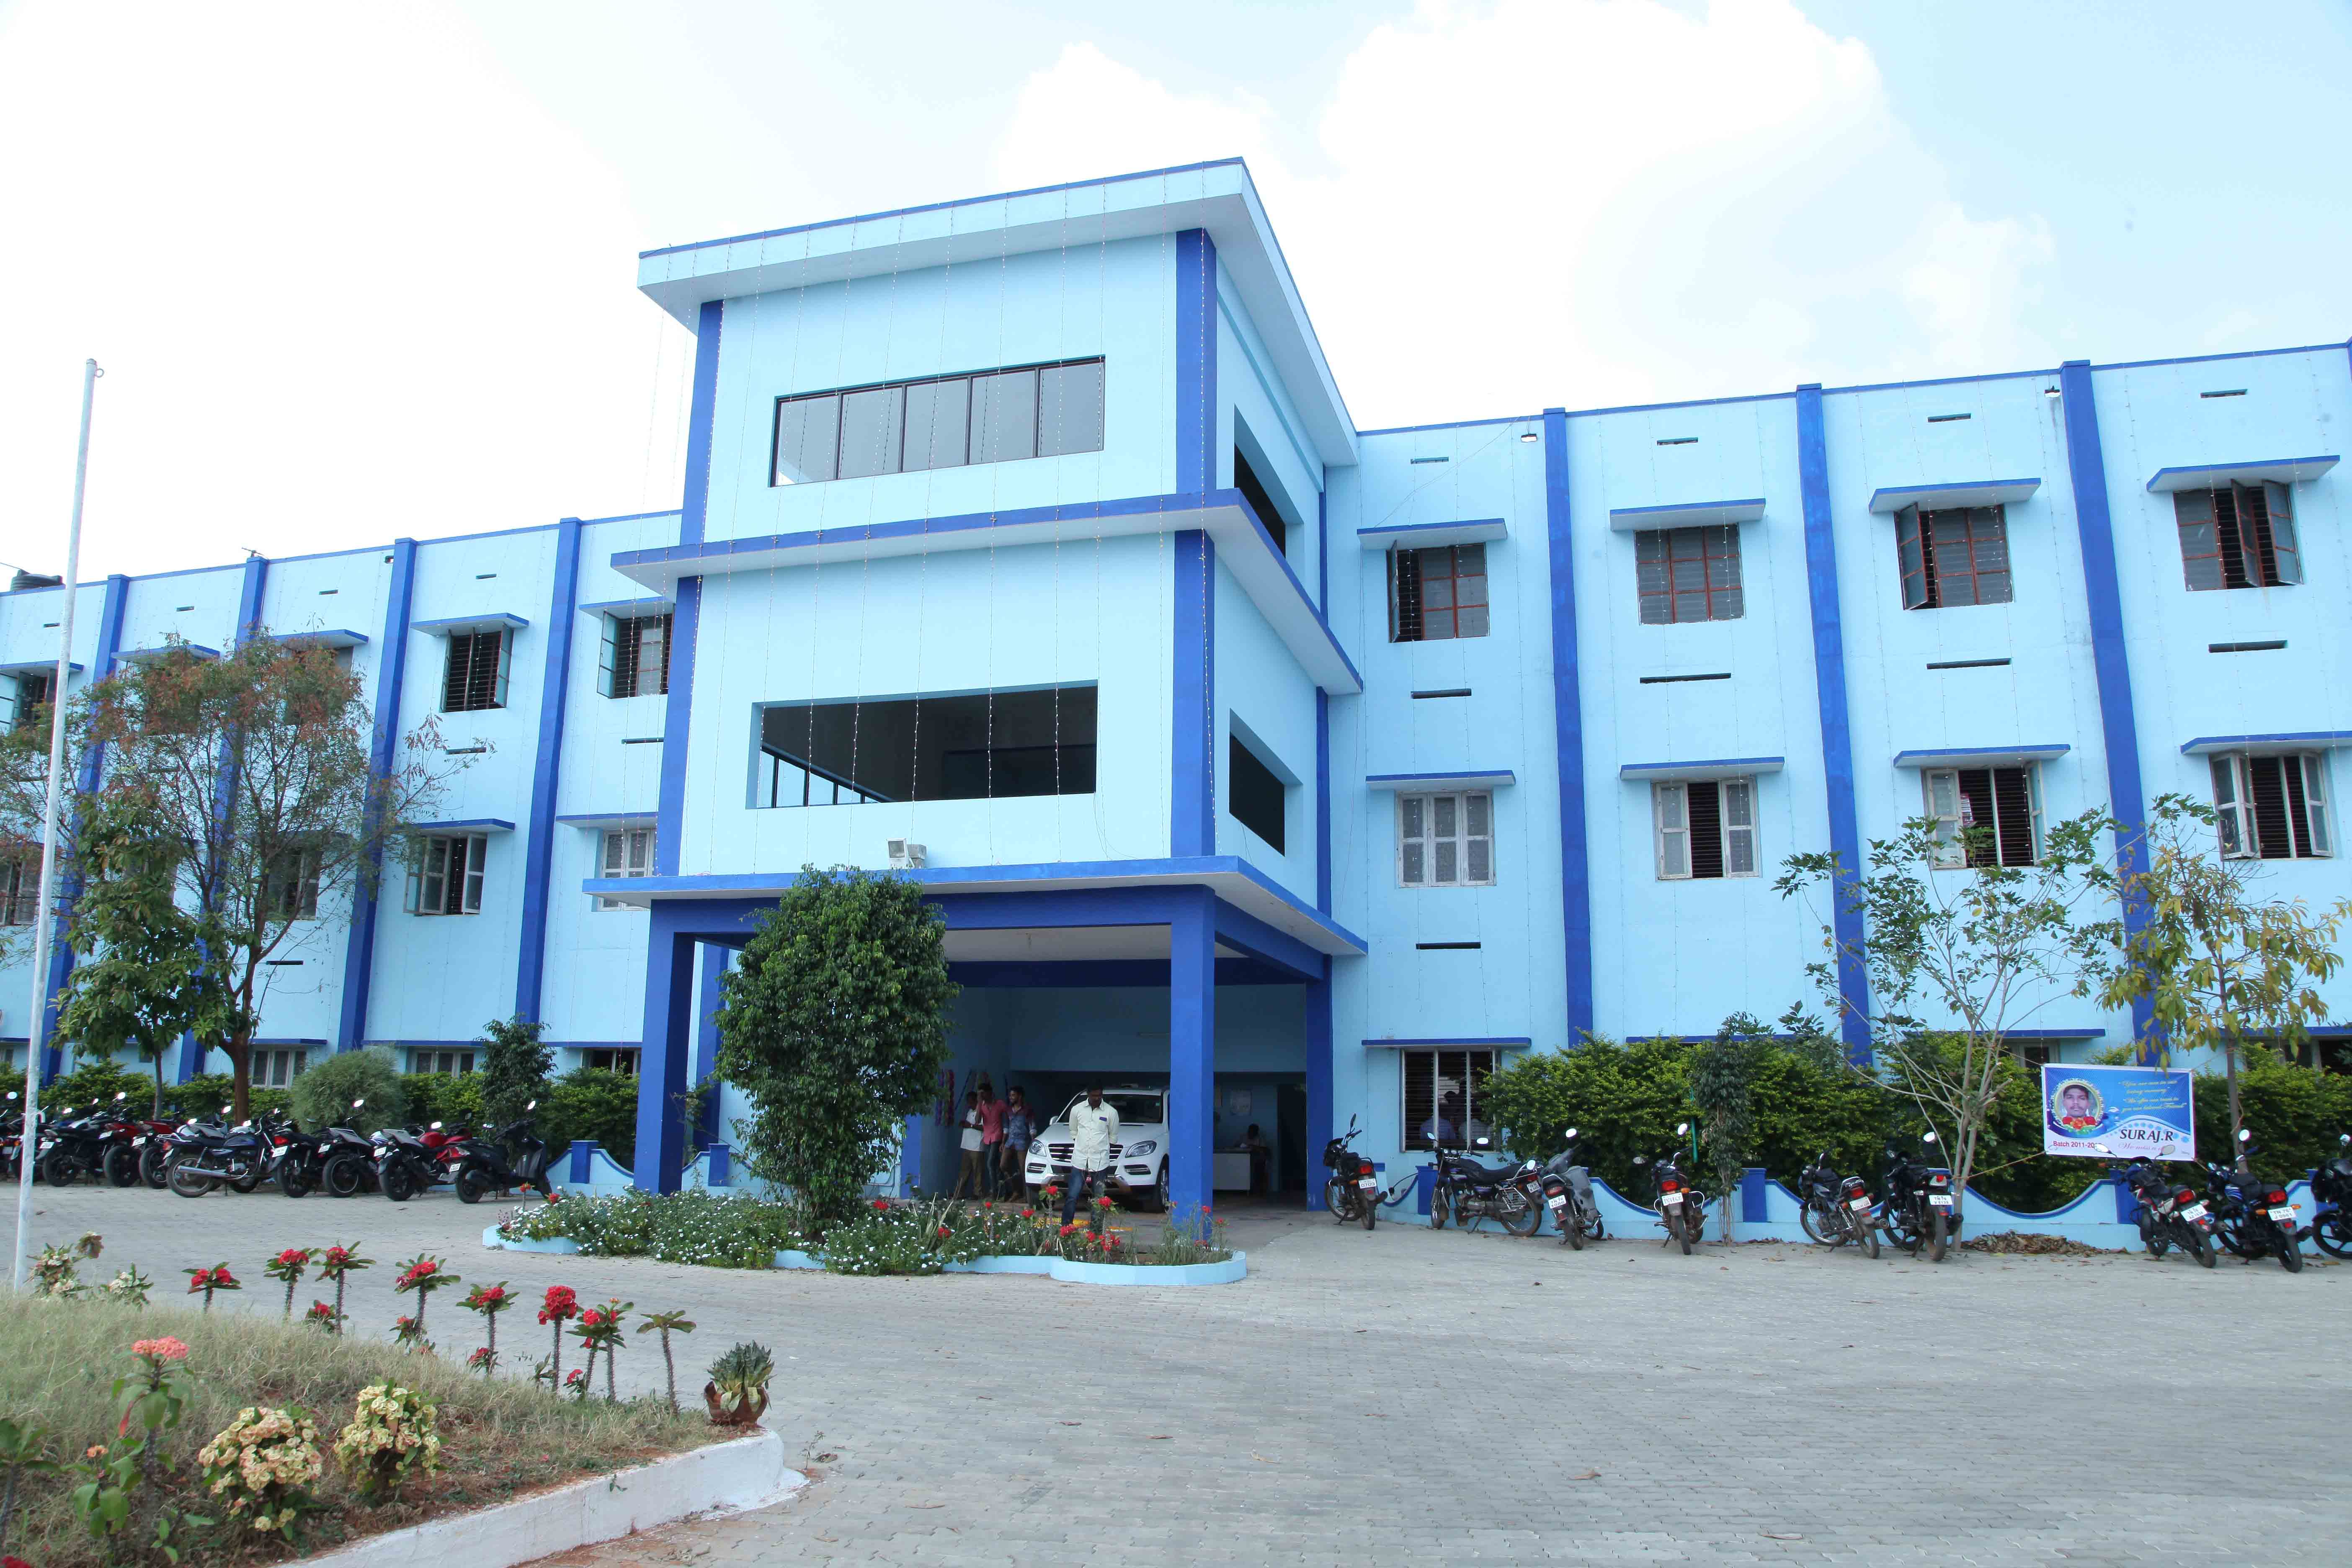 A.R. College of Engineering and Technology, Tirunelveli